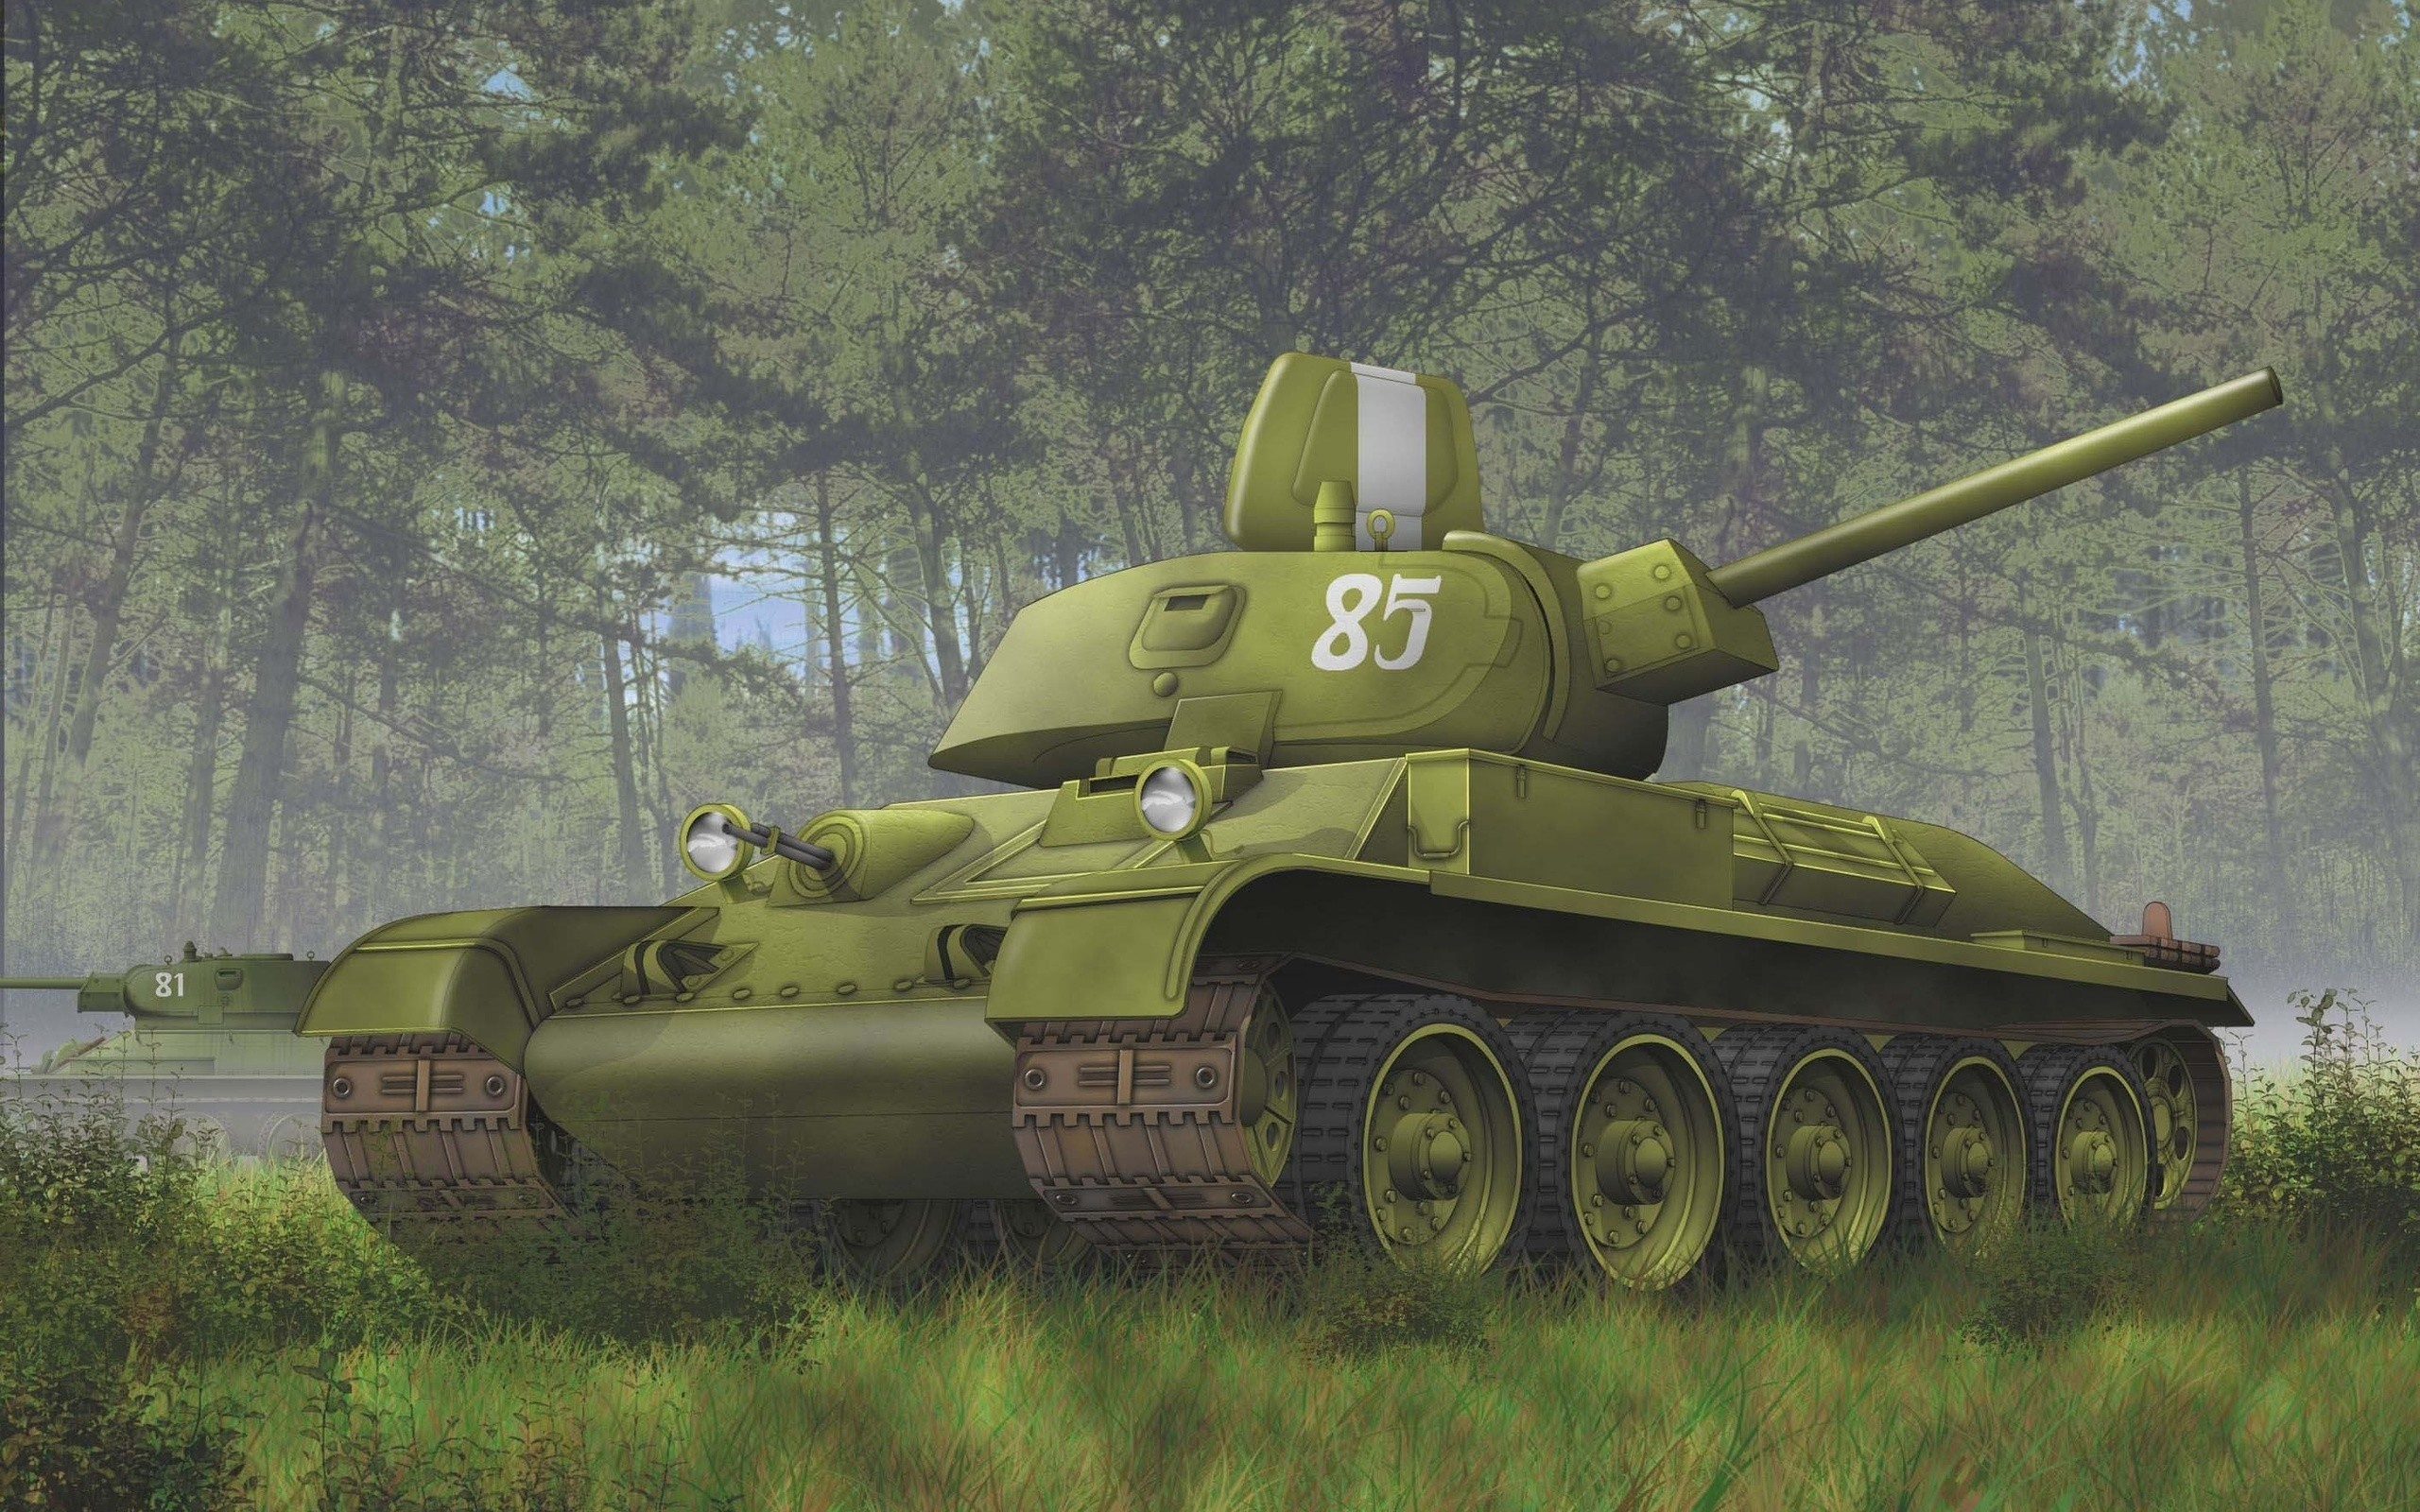 Res: 2560x1600, Soviet, The T-34 76, Tank, Forest, Ww2